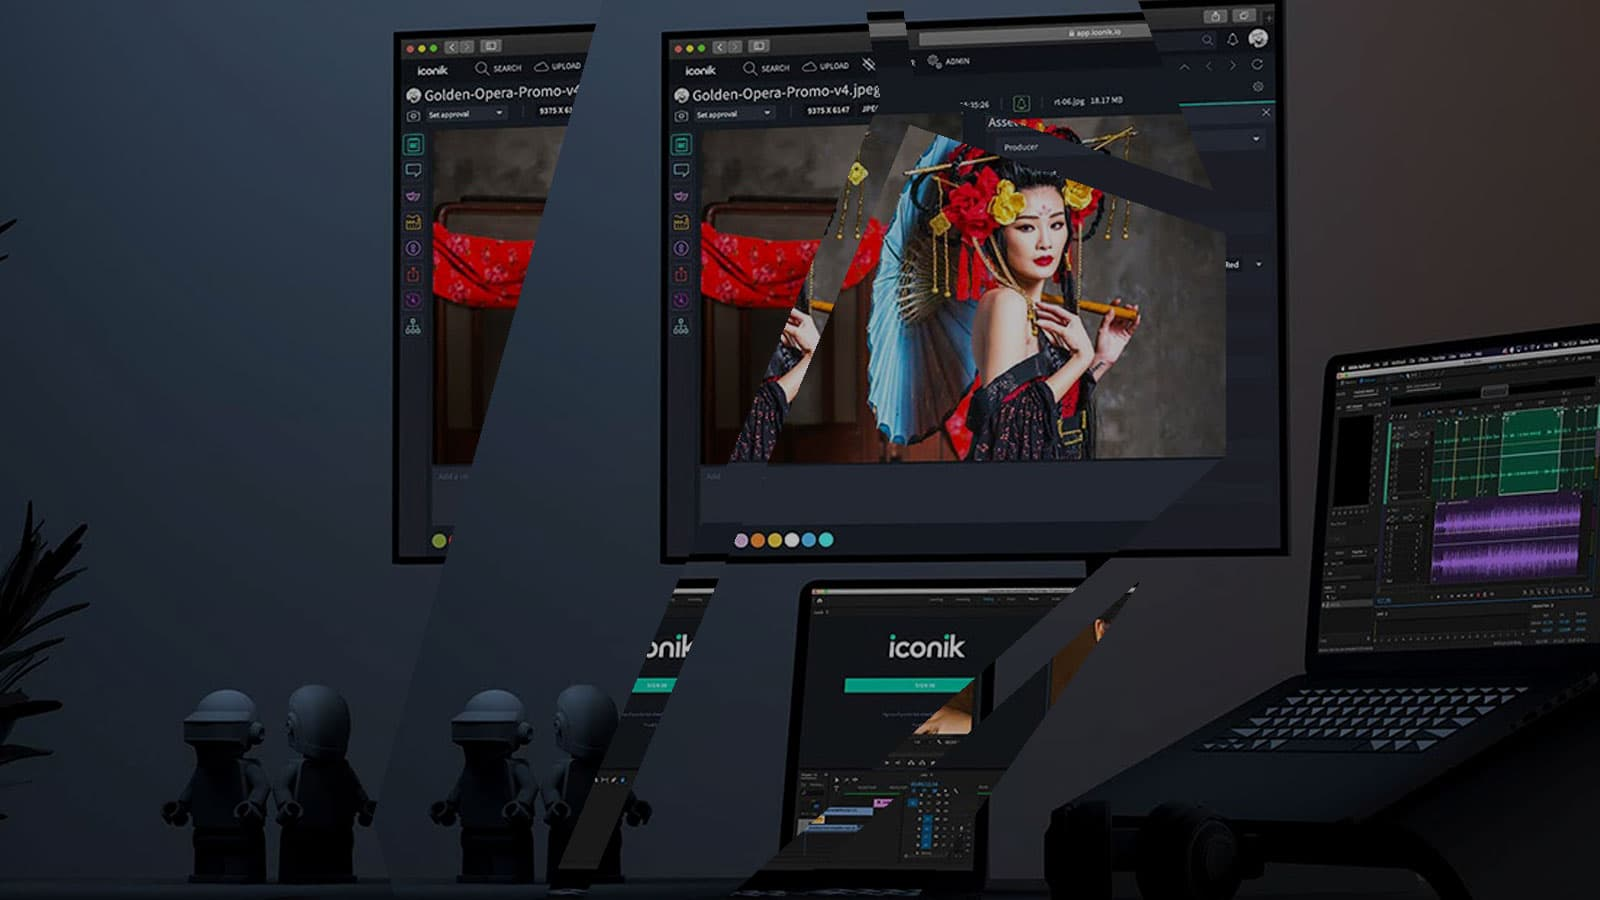 We see iconik editing software and sound edit happening across two screens. A woman in geisha clothing is on screen vibrant red and blues.